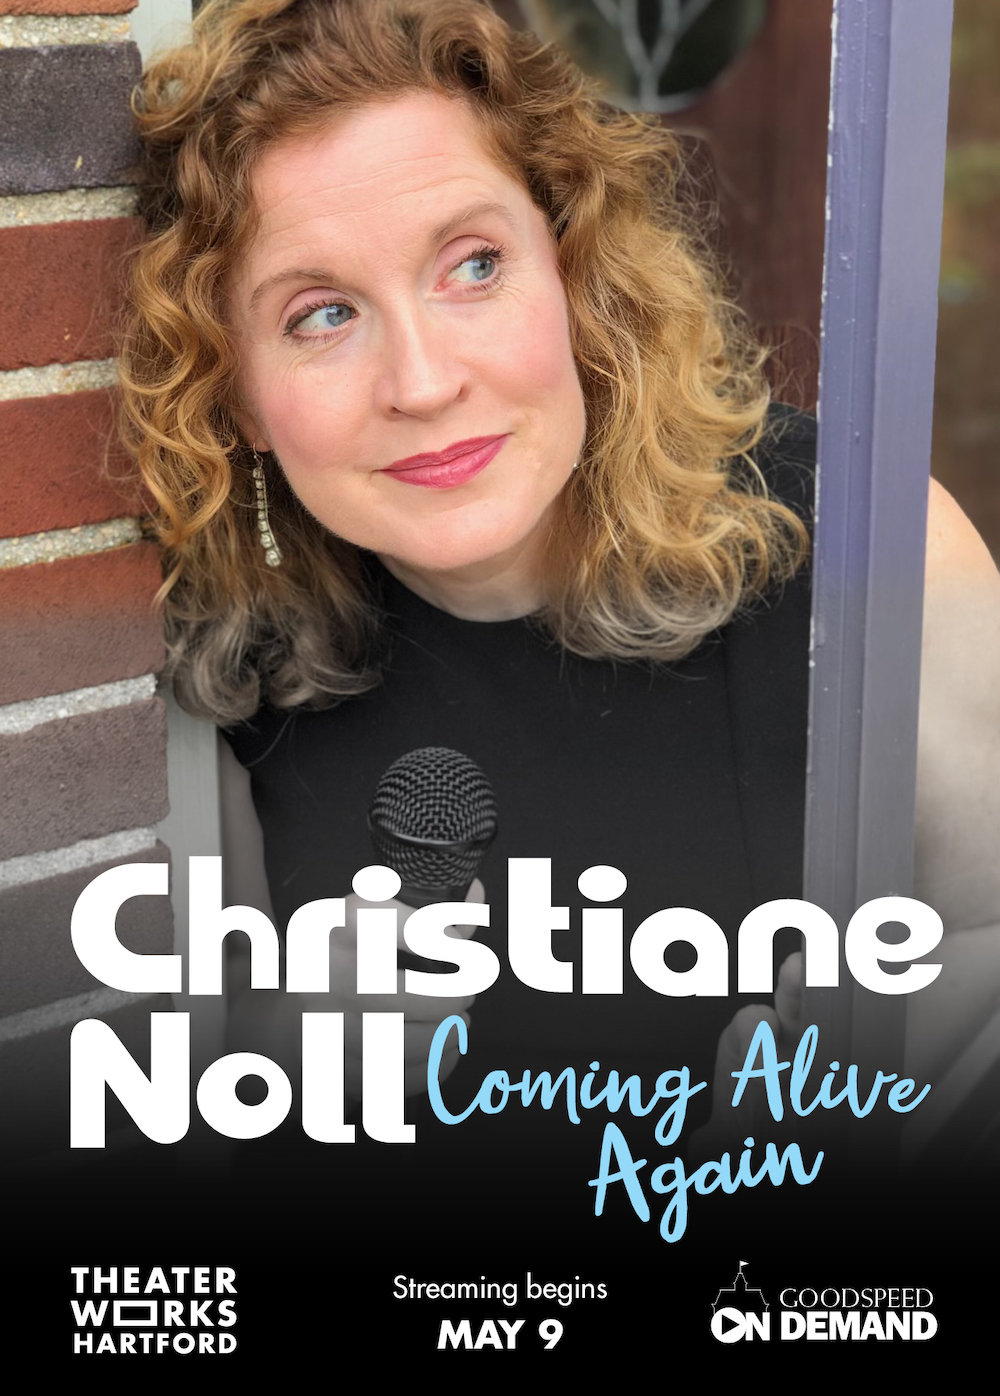 TheaterWorks Hartford and Goodspeed Musicals CHRISTIANE NOLL: COMING ALIVE AGAIN